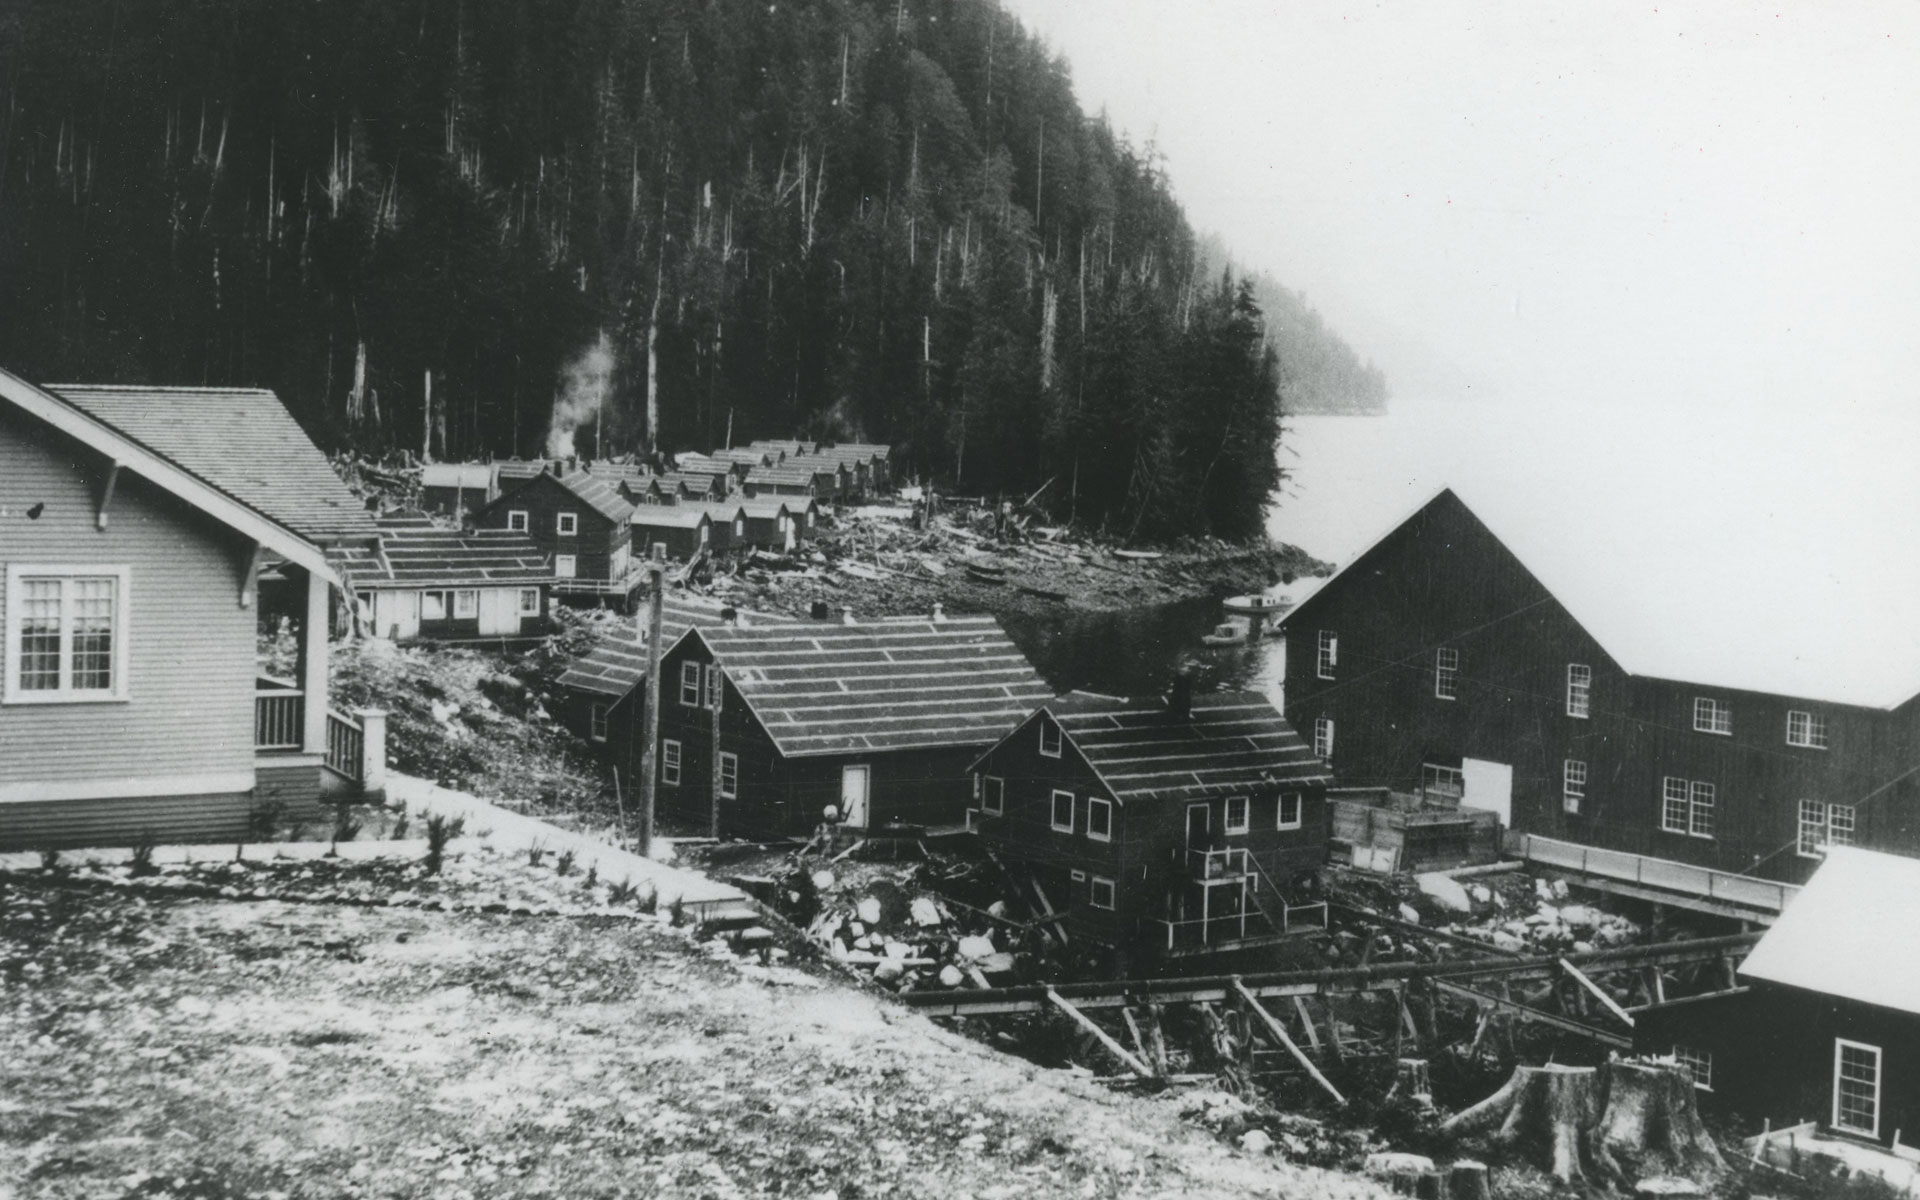 The Walker Lake Cannery viewed from the land behind the cannery with Johnstone Channel visible behind the buildings.